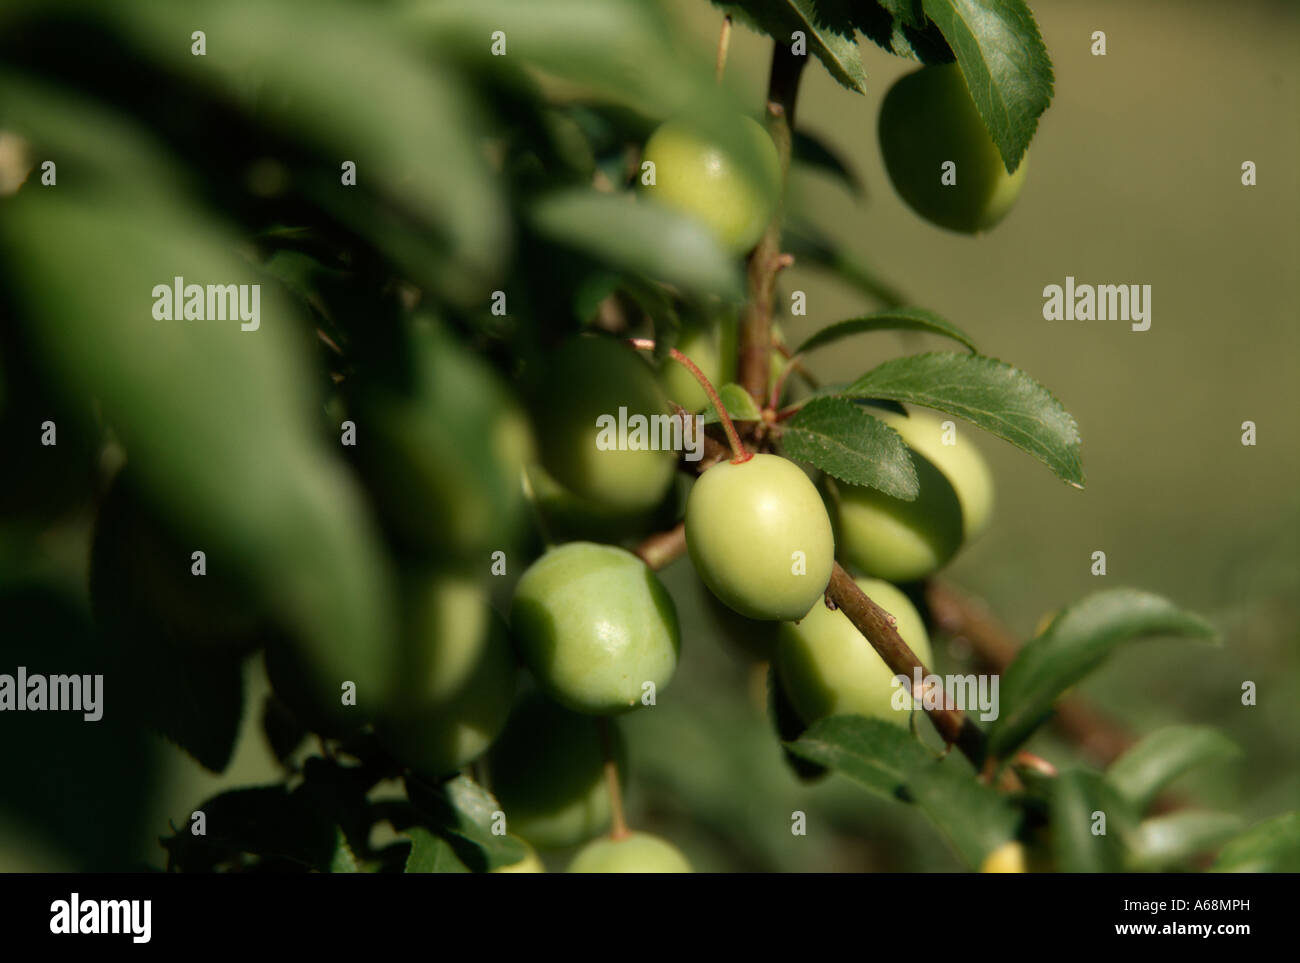 First plums on tree. Valencia. Spain. - Stock Image